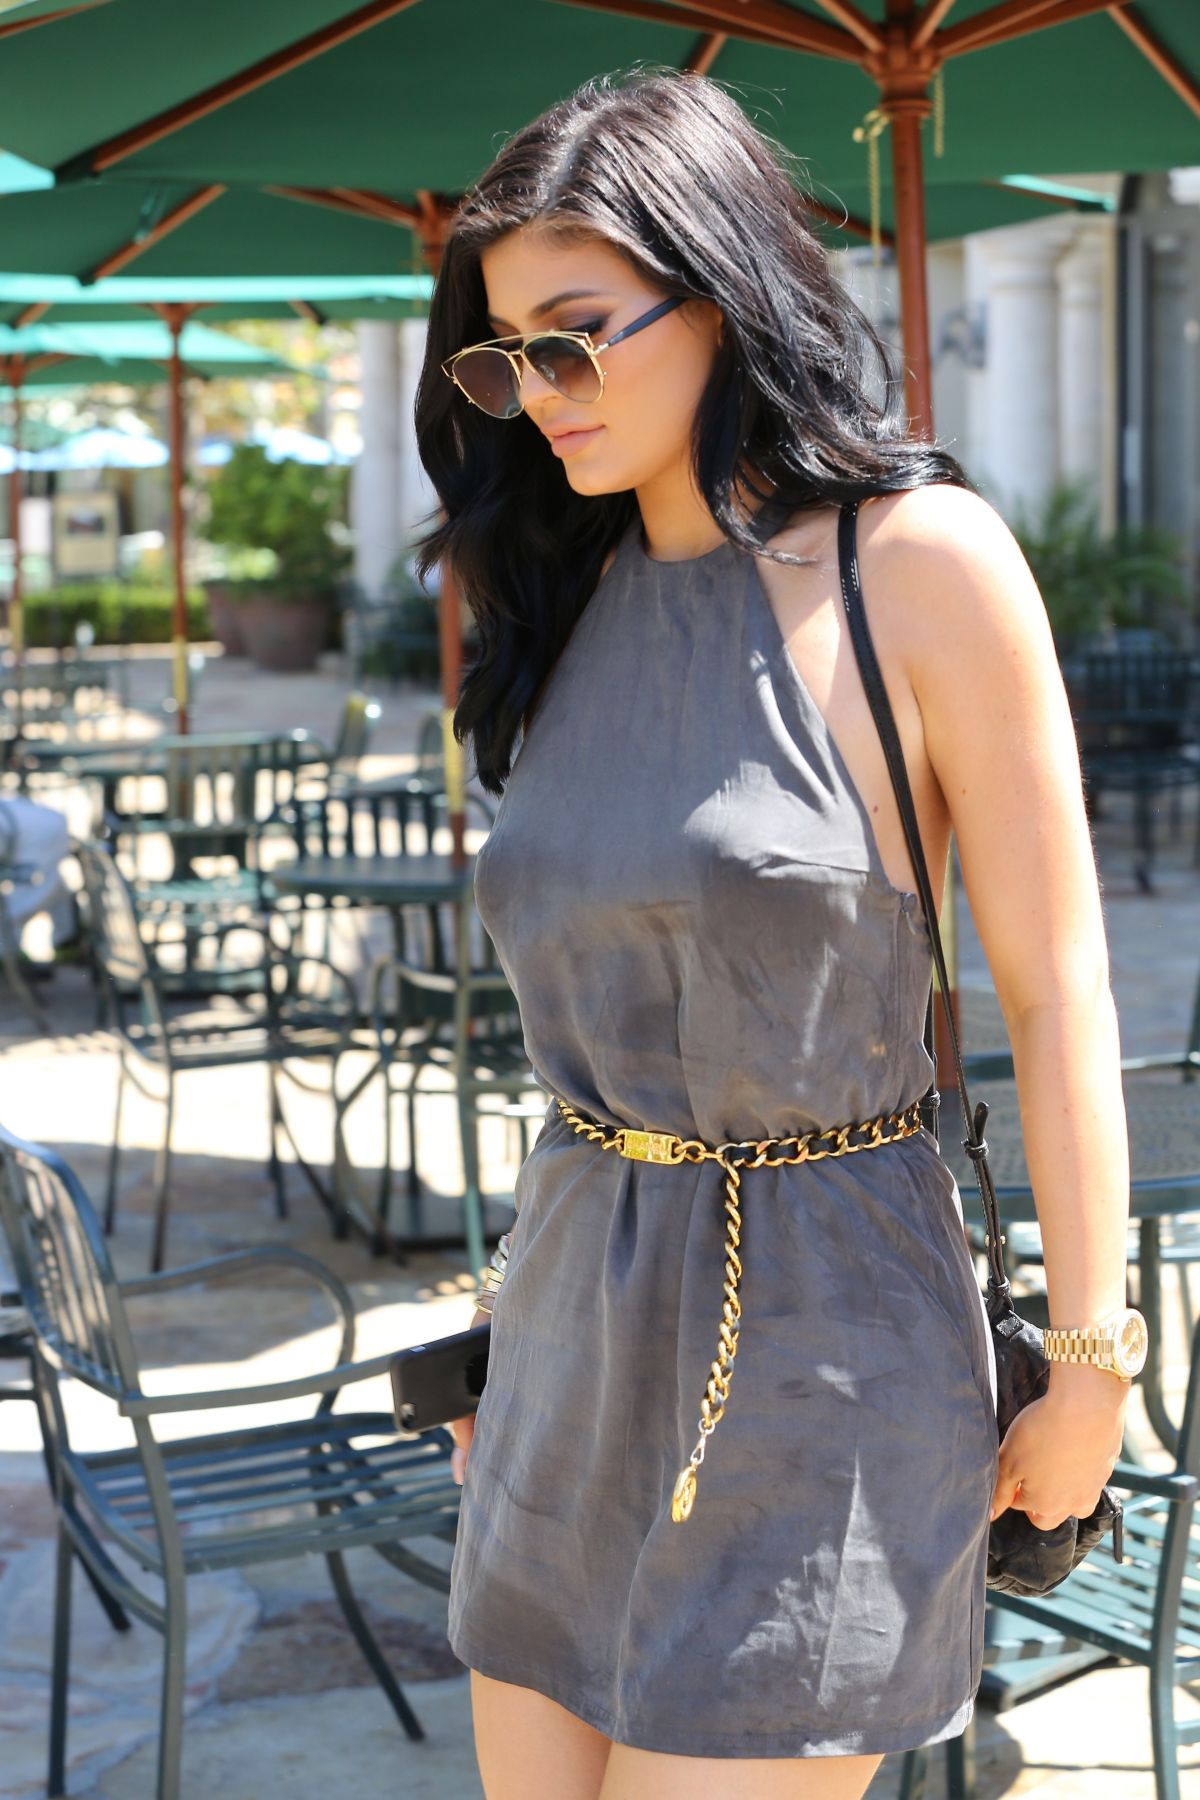 e951f01243 KYLIE JENNER Out and About in Los Angeles 07 31 2015 - HawtCelebs